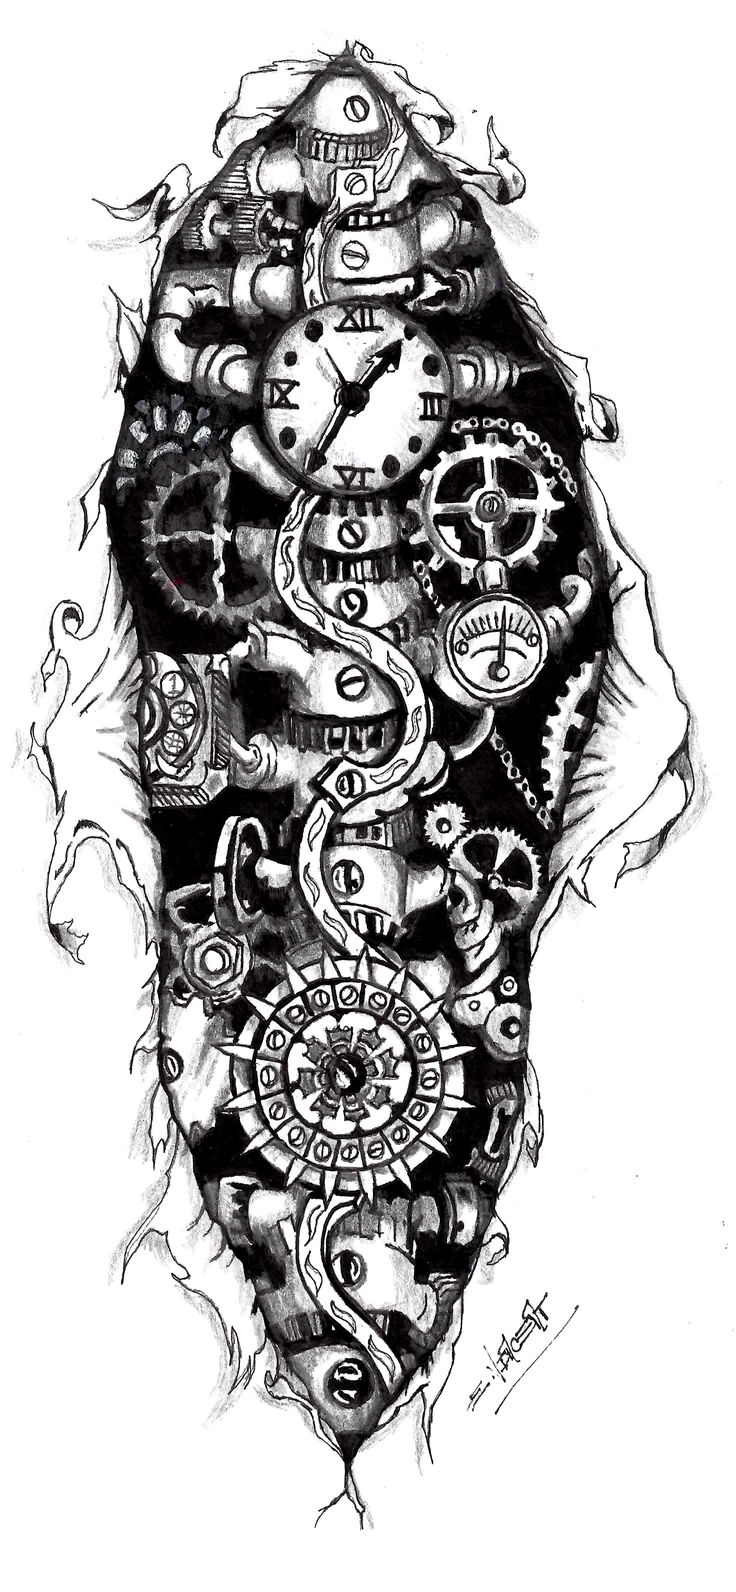 Steampunk Gears Tattoo | Steampunk Clock Tattoo Designs Steampunk cloc.